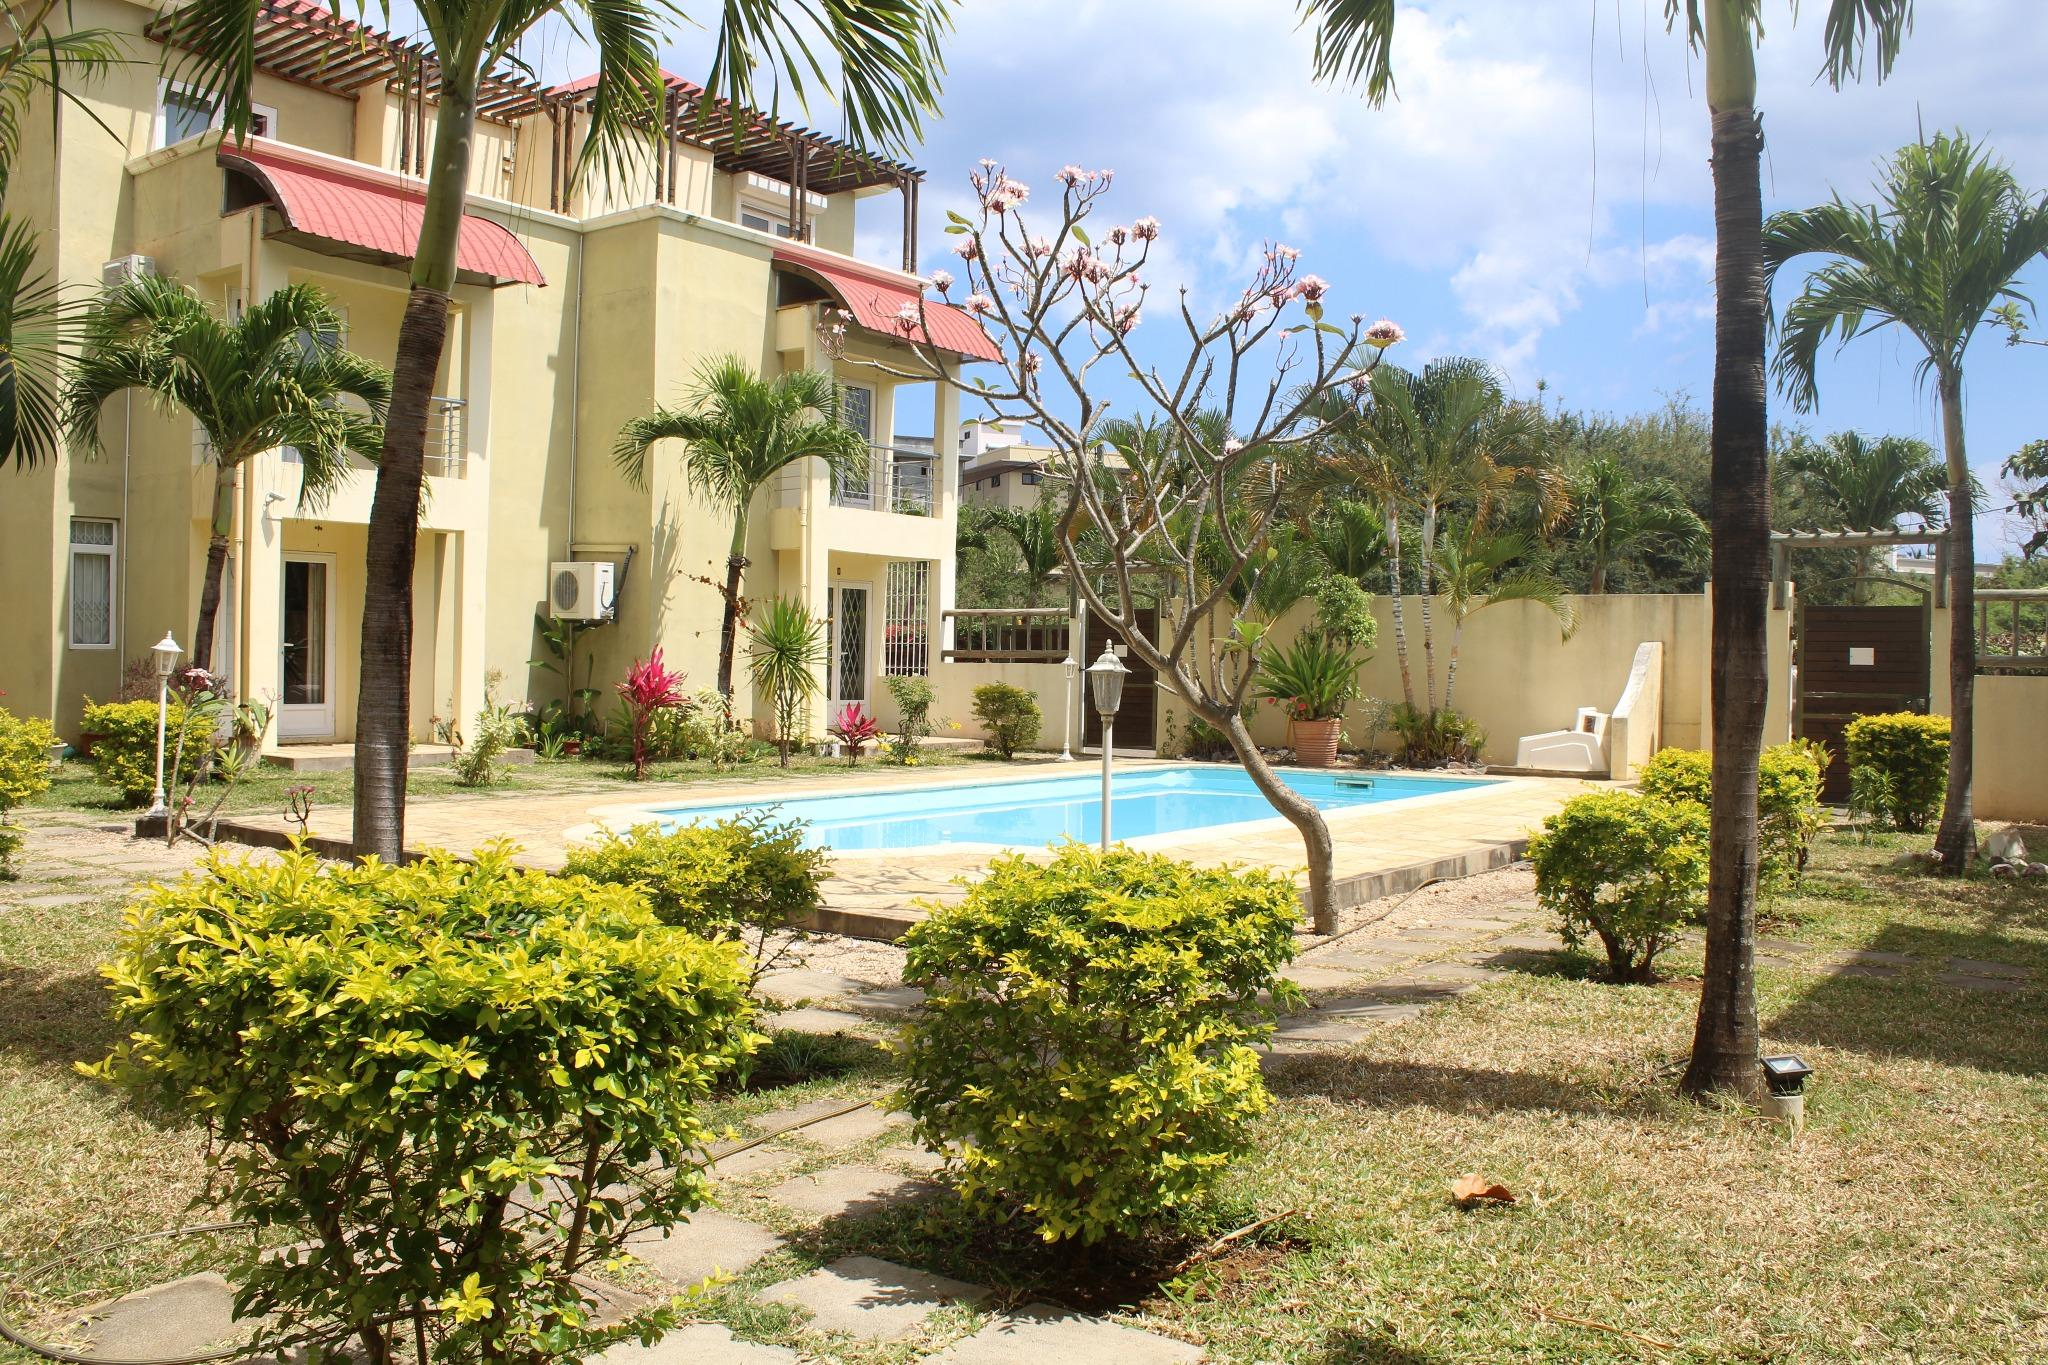 To rent – Furnished and equipped duplex of 130 m2 in Flic en Flac.